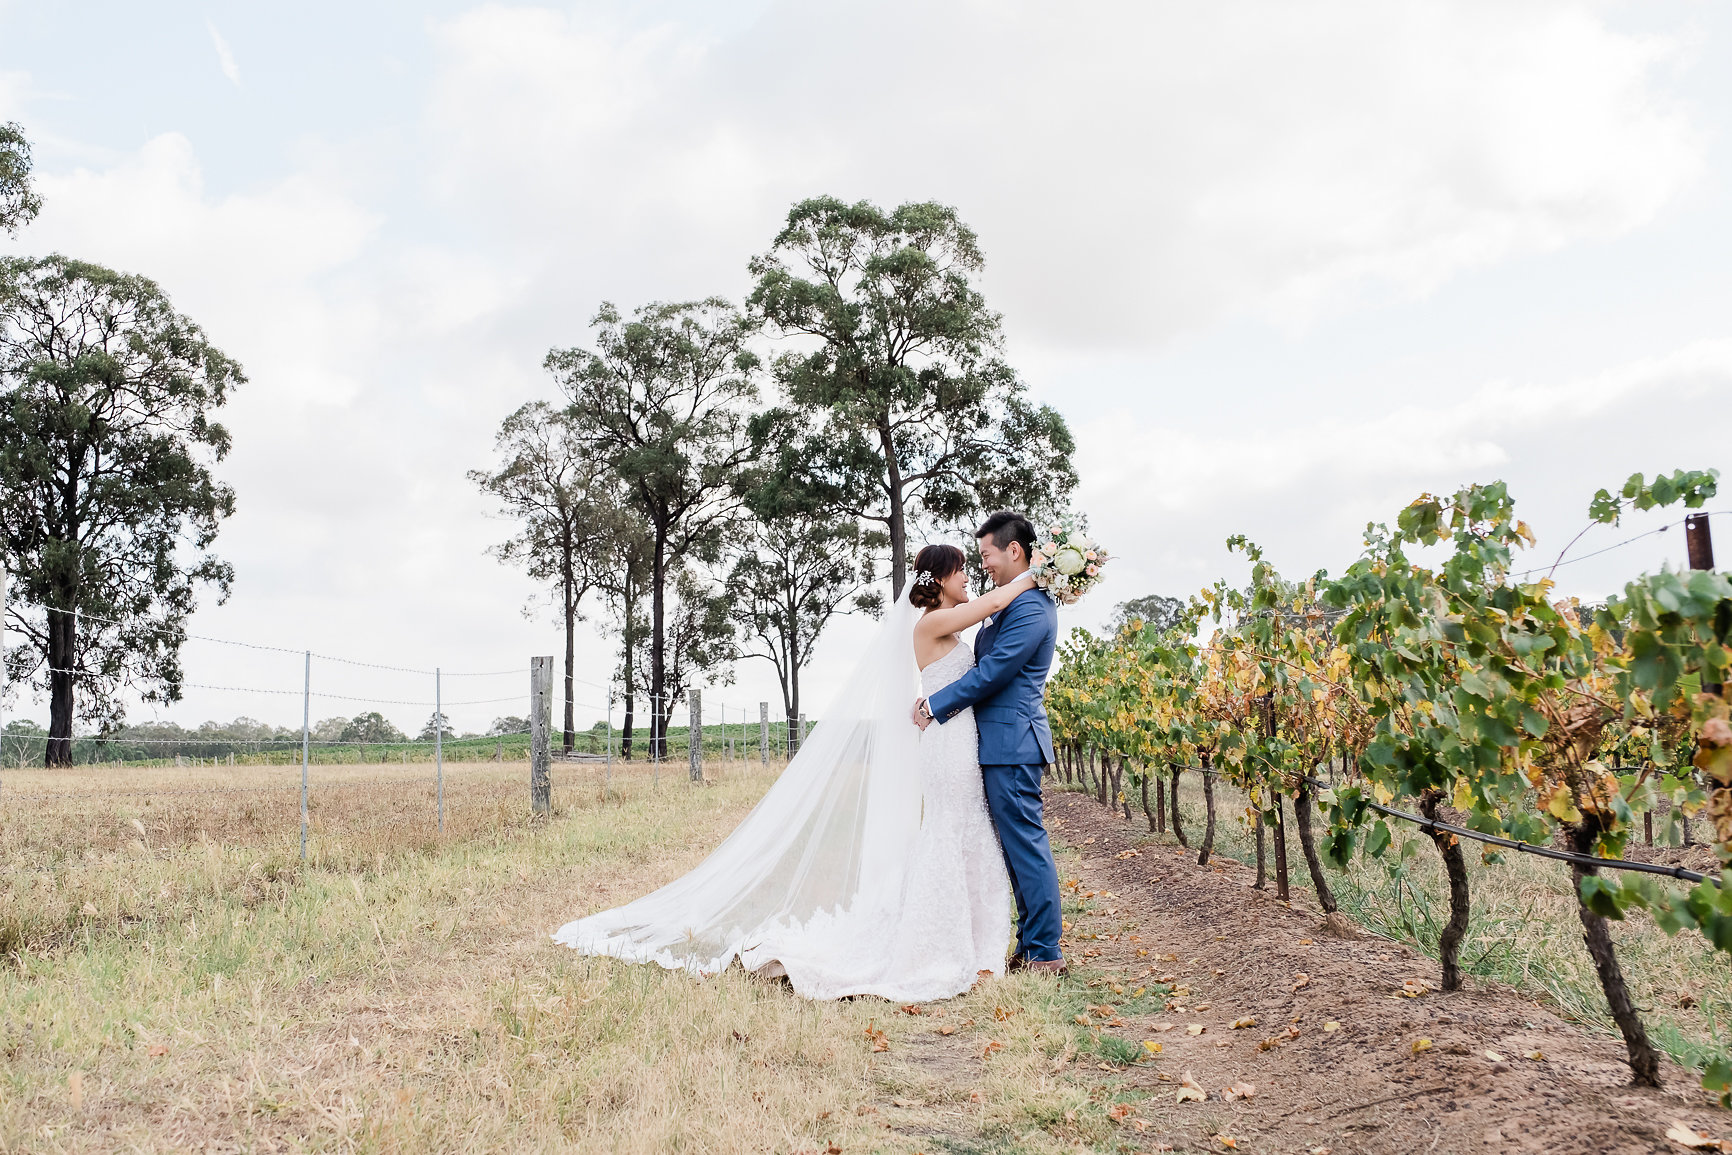 Sydney Wedding Photography Ironbark Hill Brewhouse  - 014.jpg